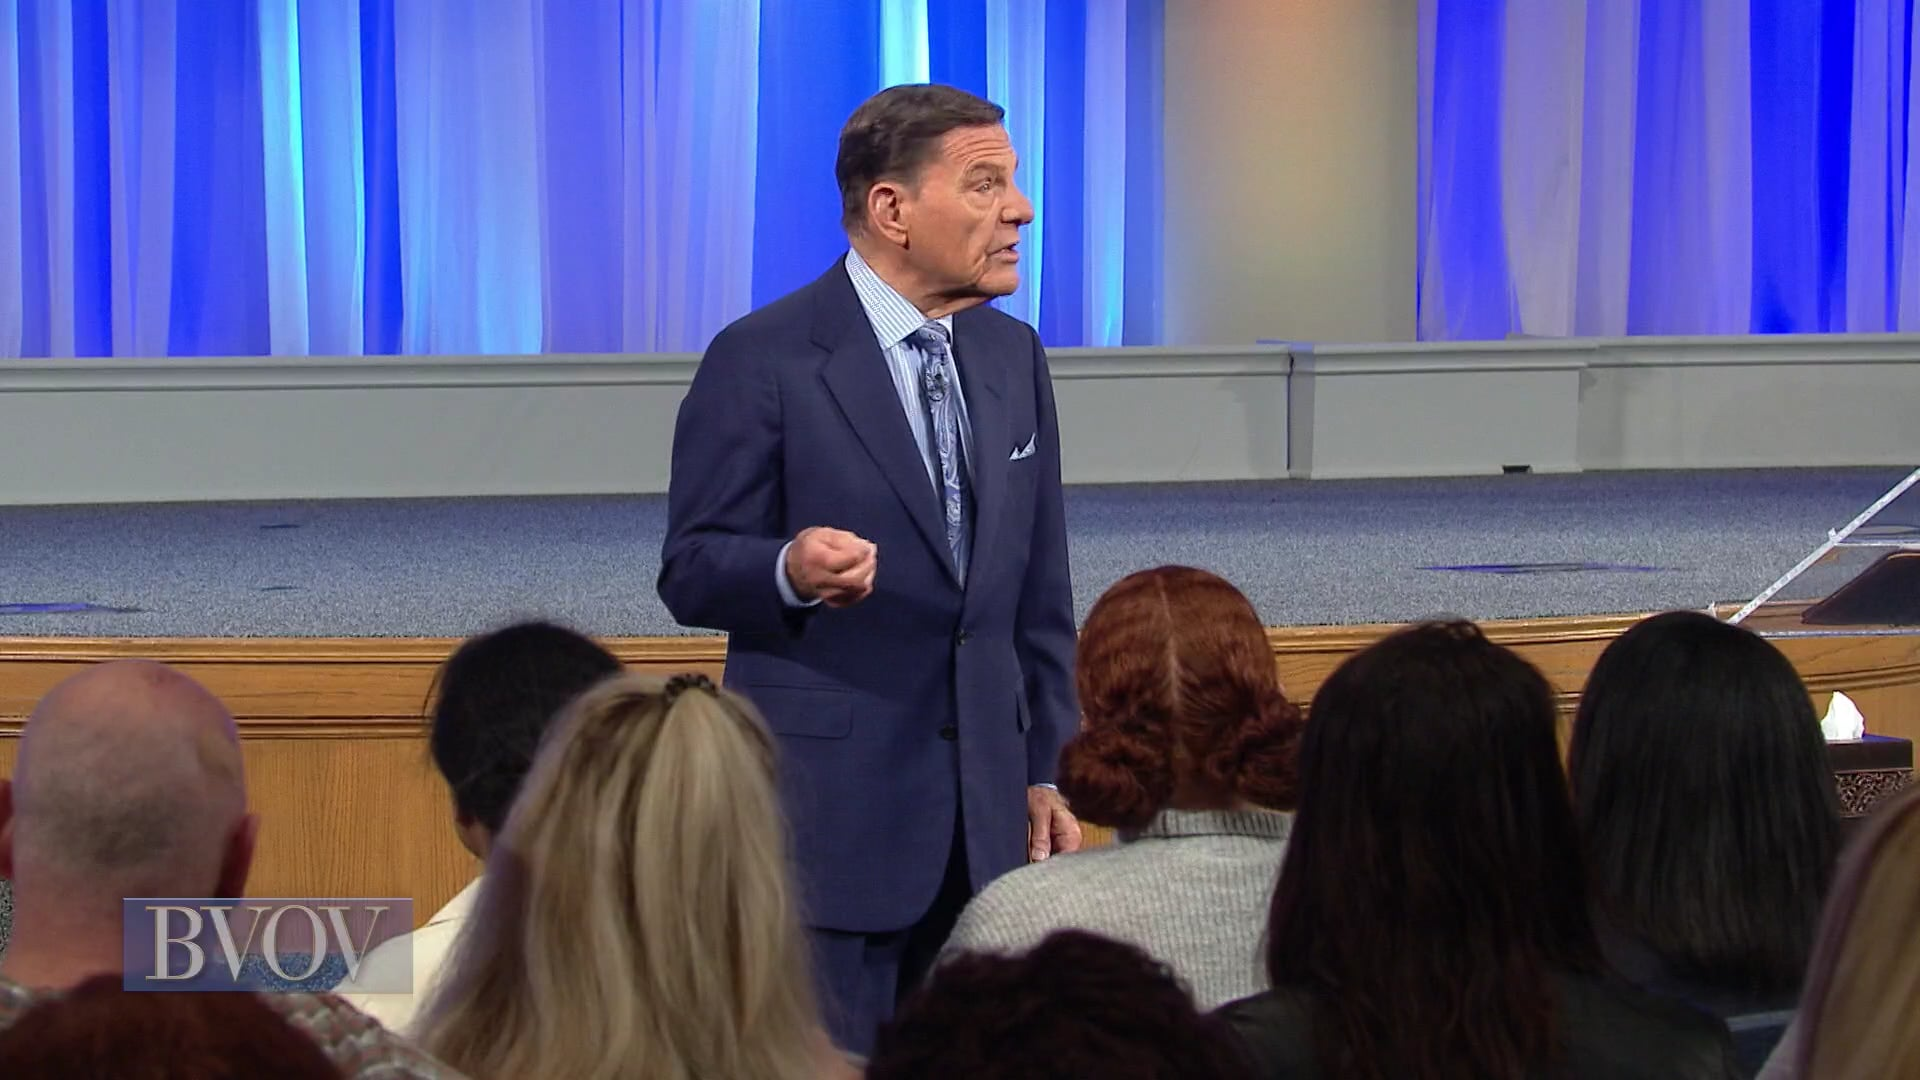 God is good all the time! Join Kenneth Copeland on Believer's Voice of Victory as he teaches you why THE BLESSING is the goodness of God poured out for you. When you see that God is never the problem, you will live in the goodness of God every day!